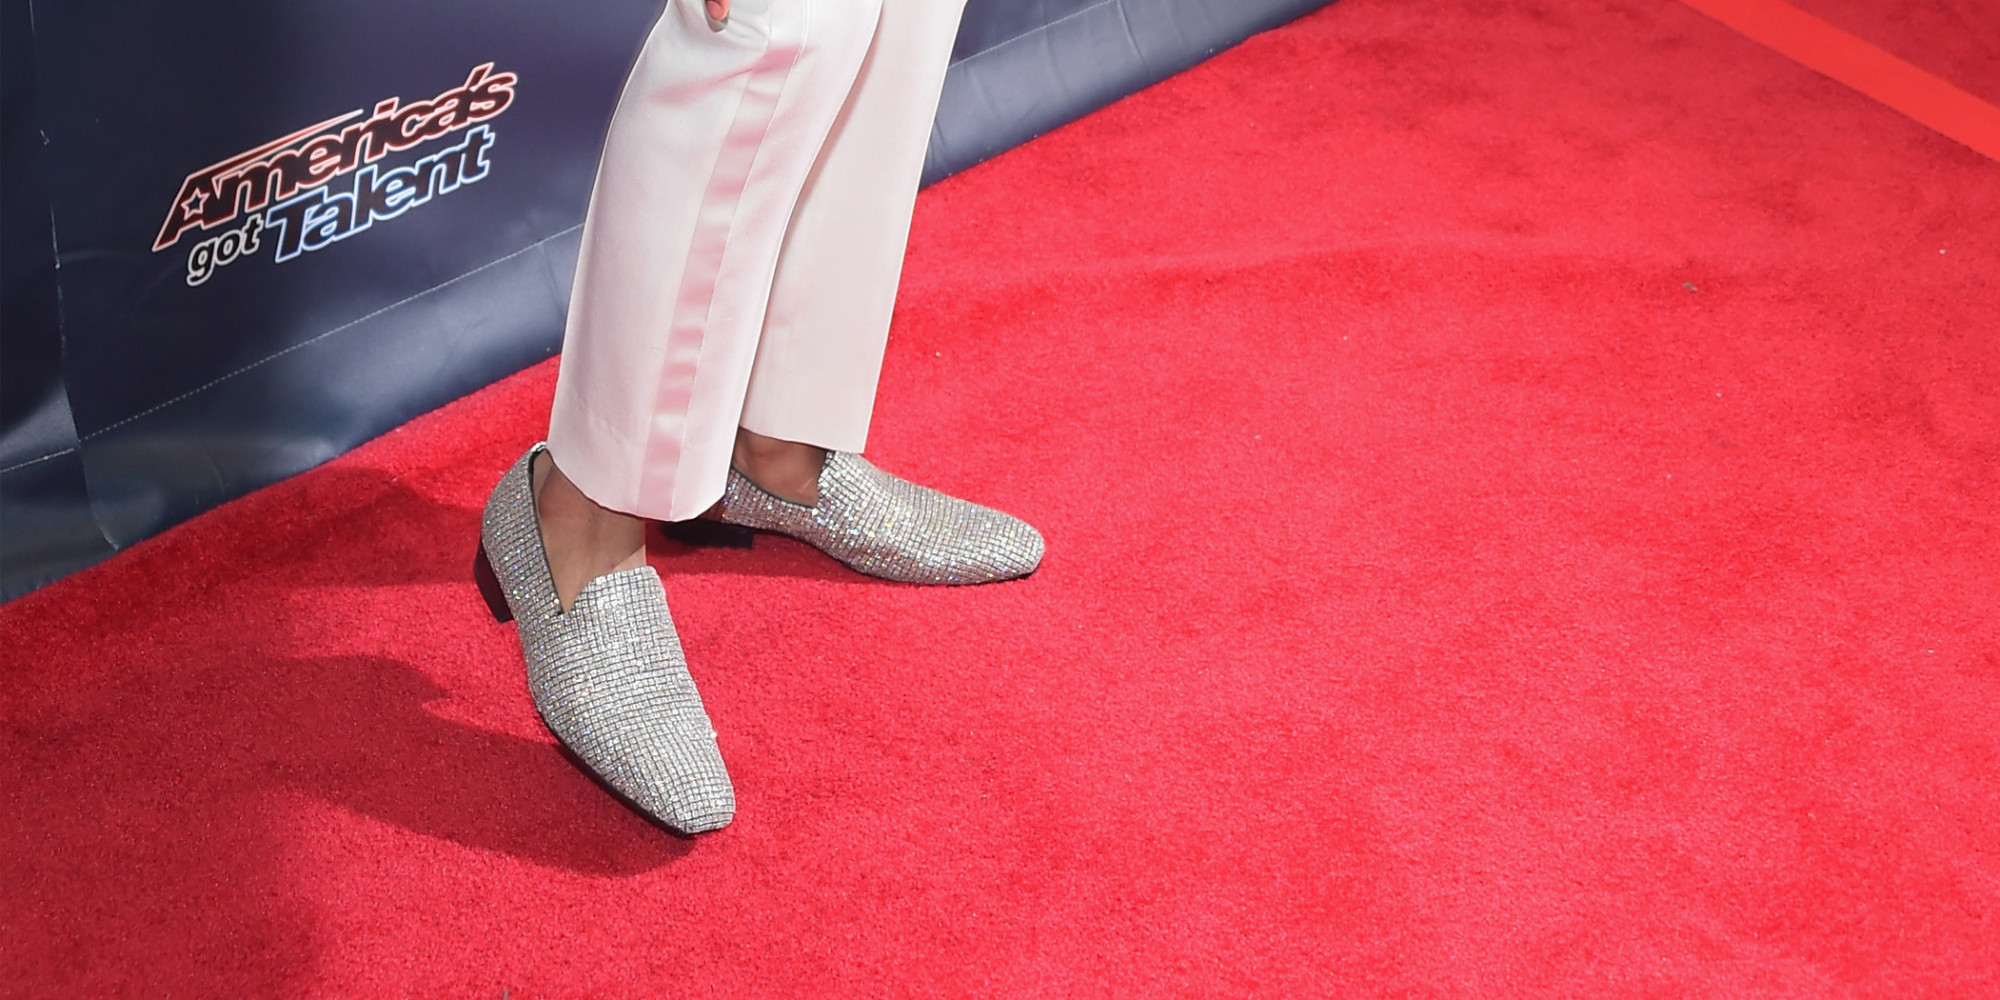 Nick Cannon S Diamond Encrusted Shoes Cost More Than Many